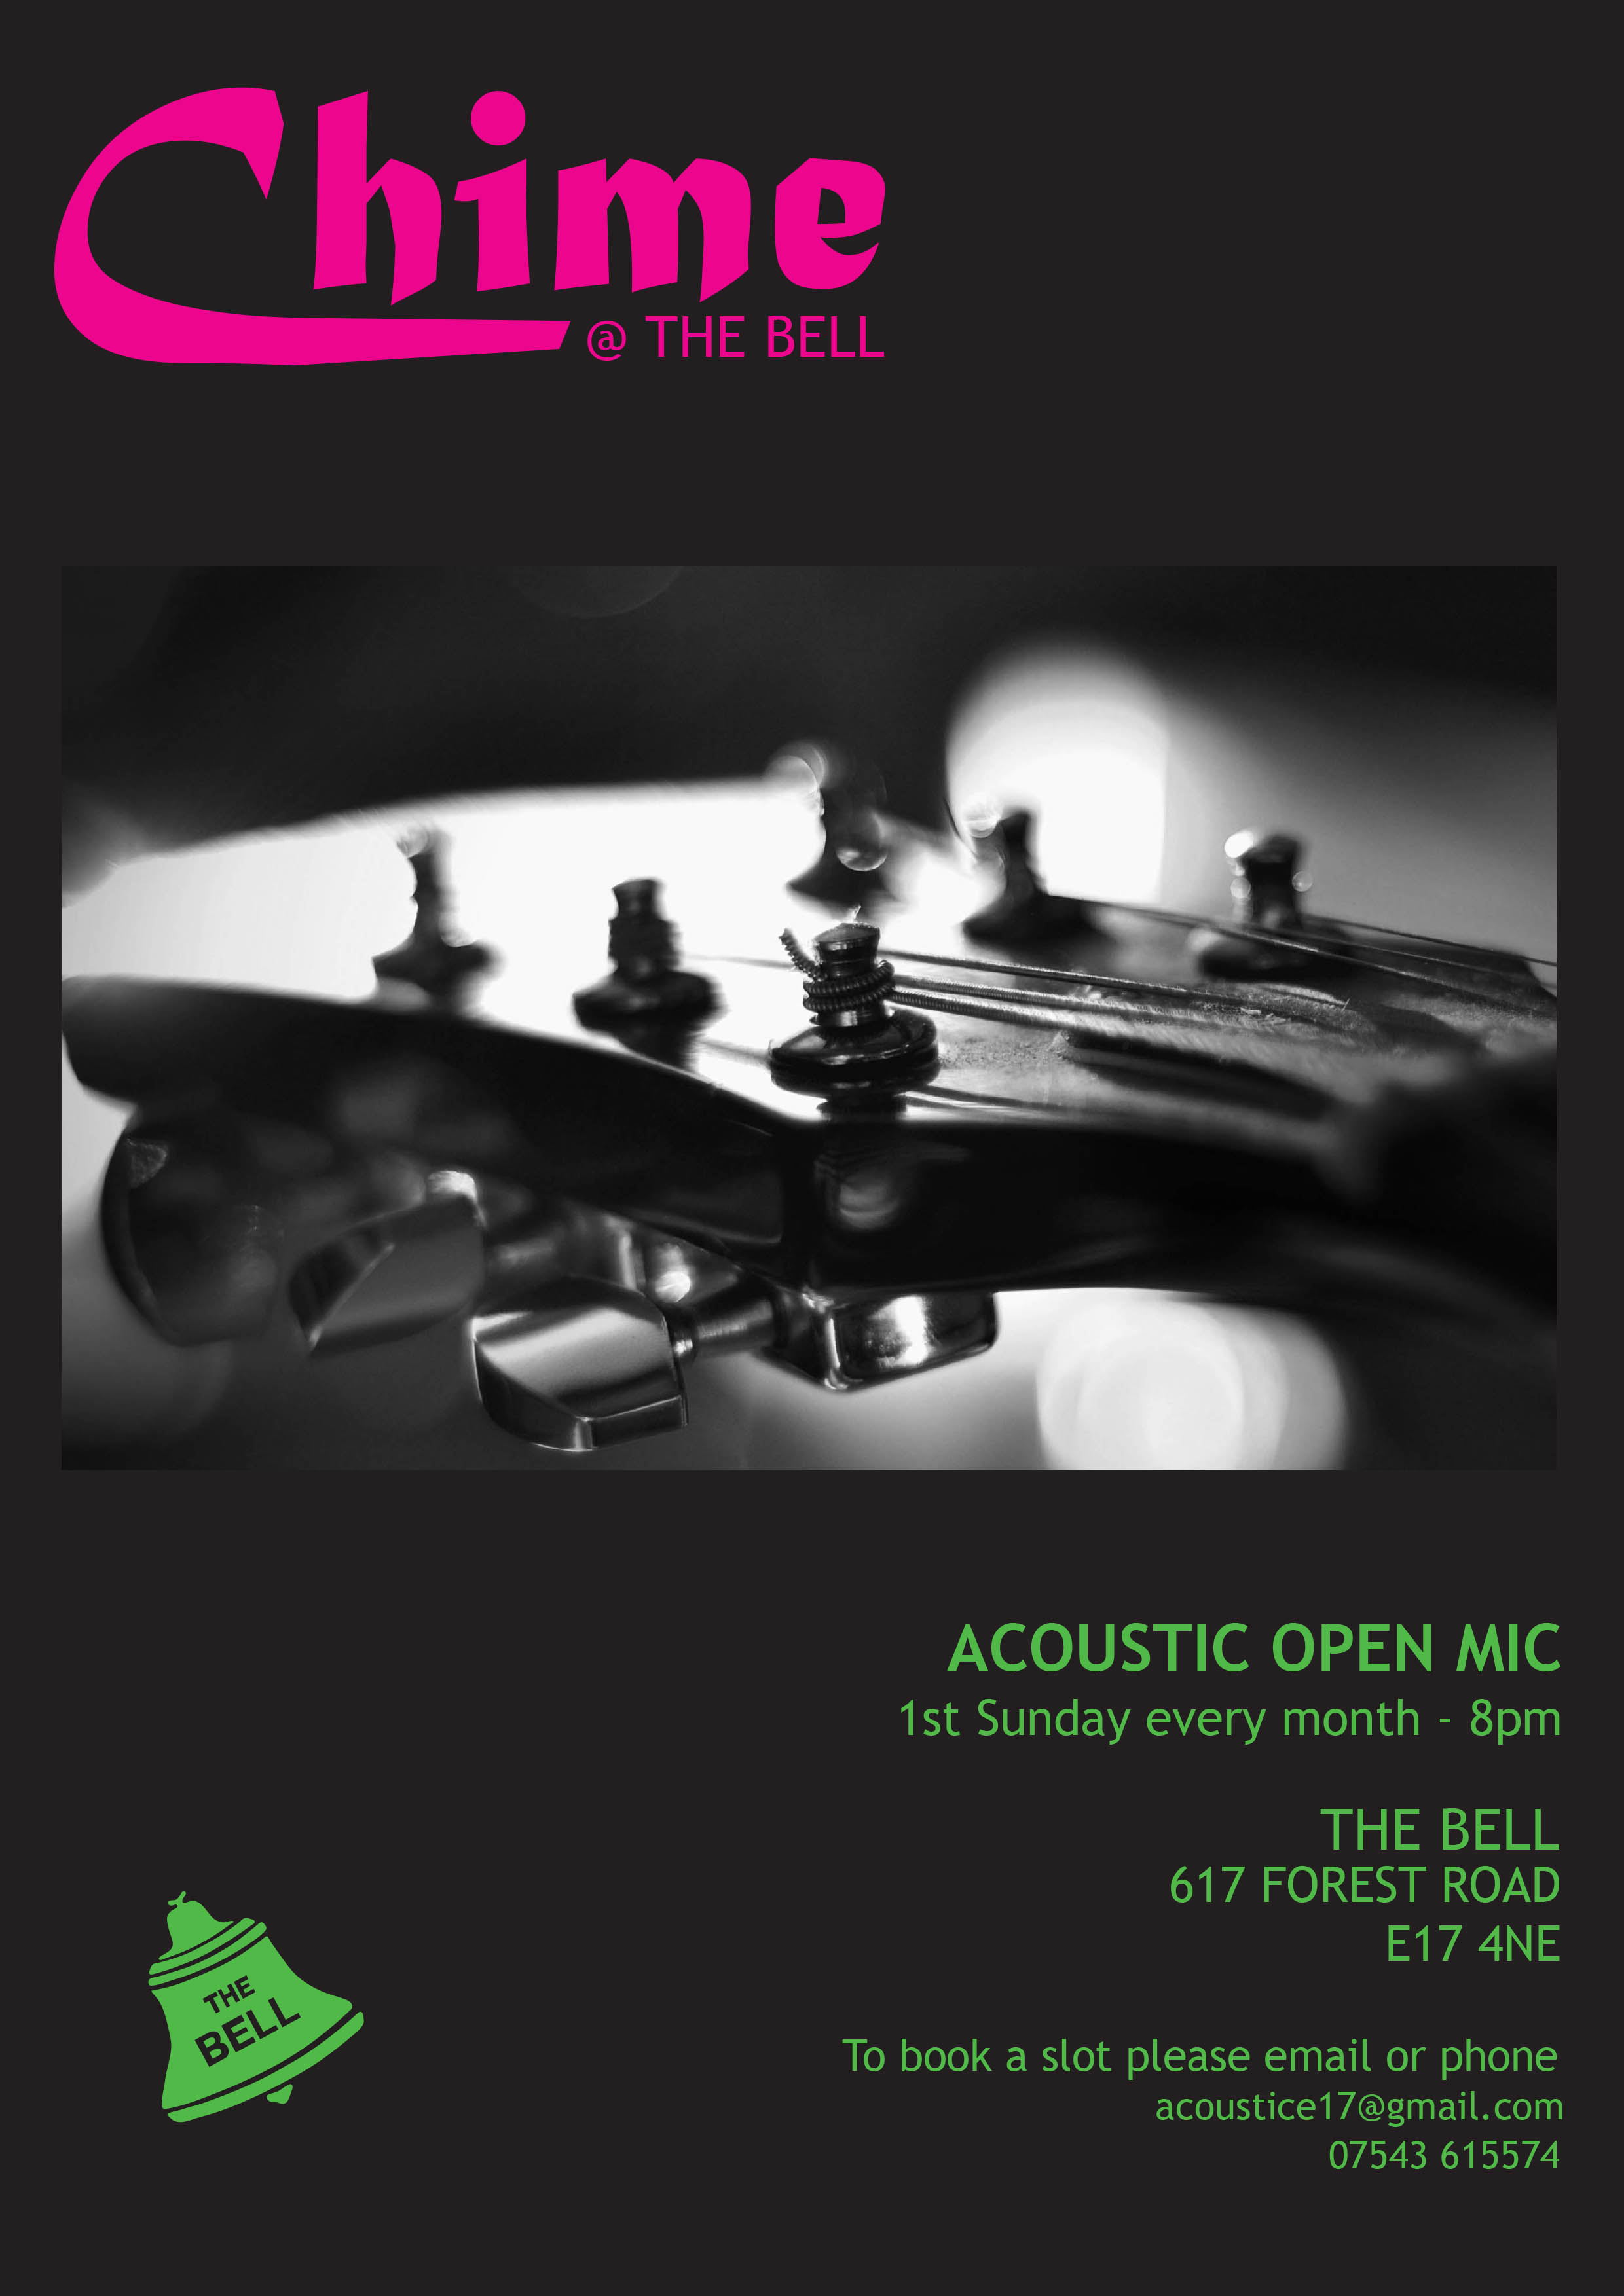 Acoustic Open Mic night the first Sunday of every month at 8pm